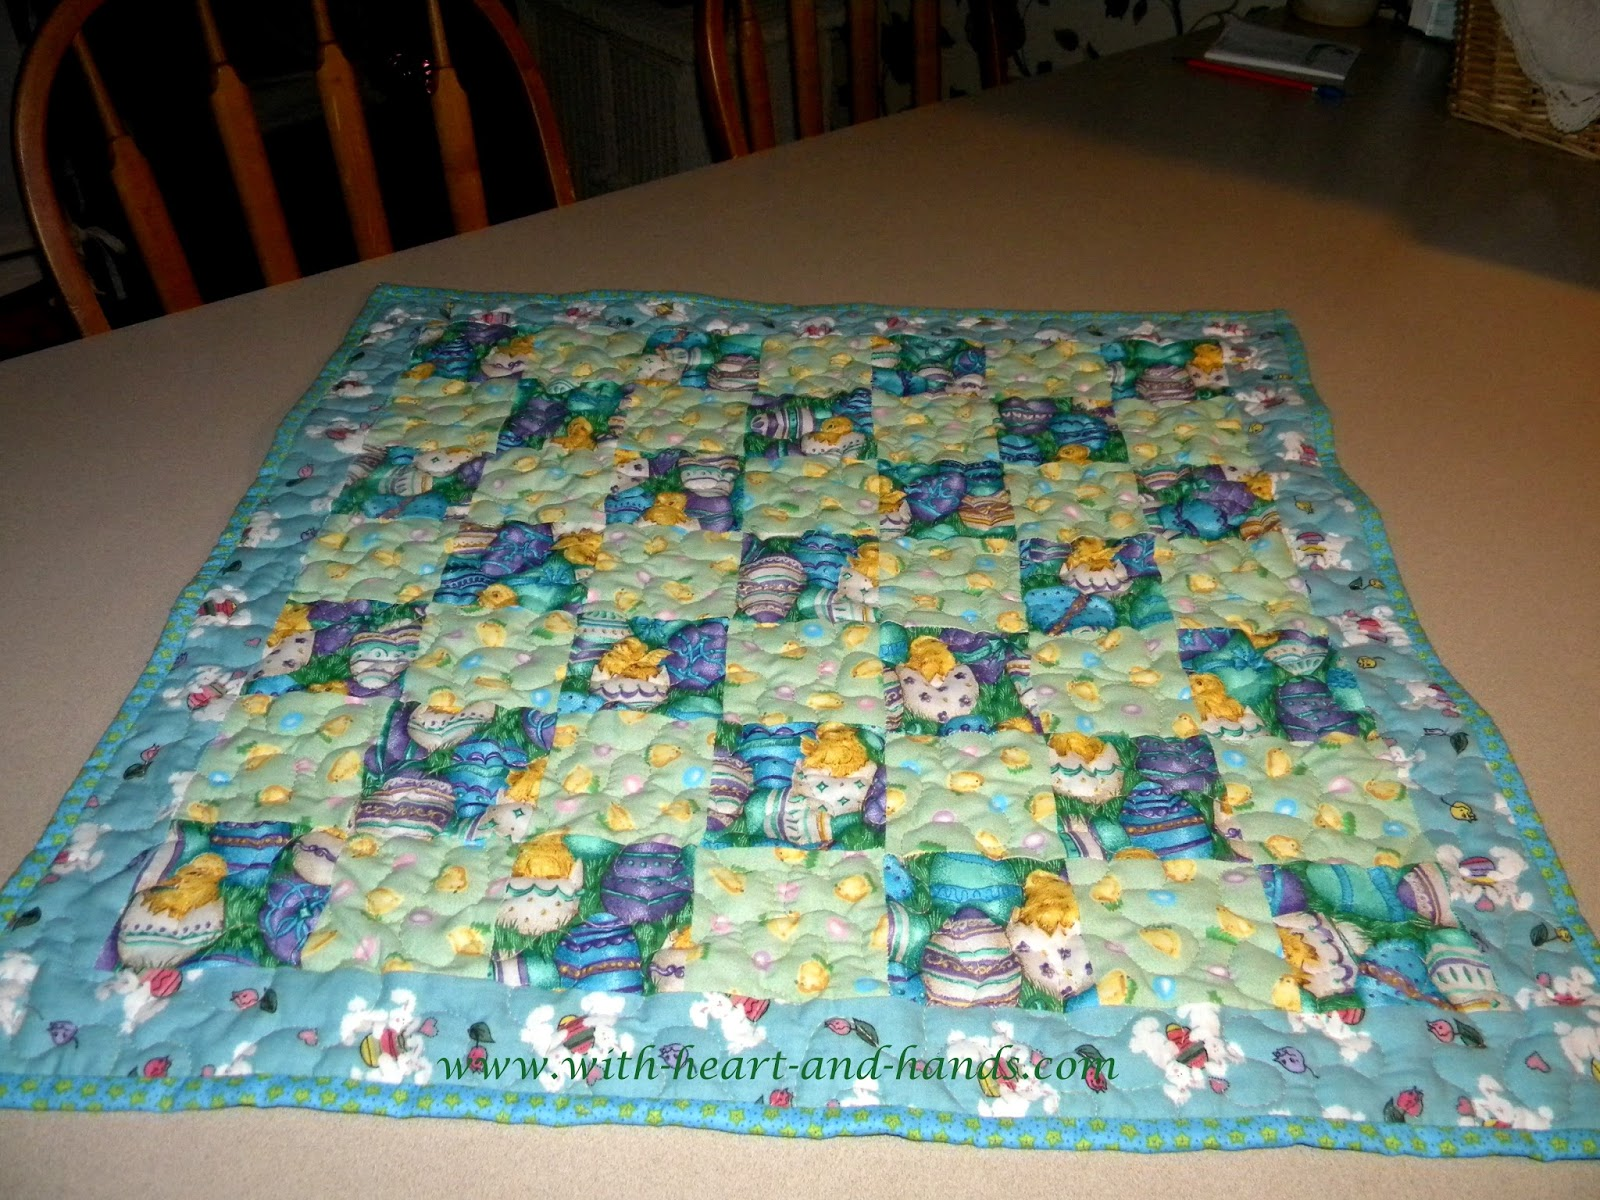 Free Quilting Patterns For Spring : Michele Bilyeu Creates *With Heart and Hands*: Free Easter, Spring, and Passover Quilt and Craft ...